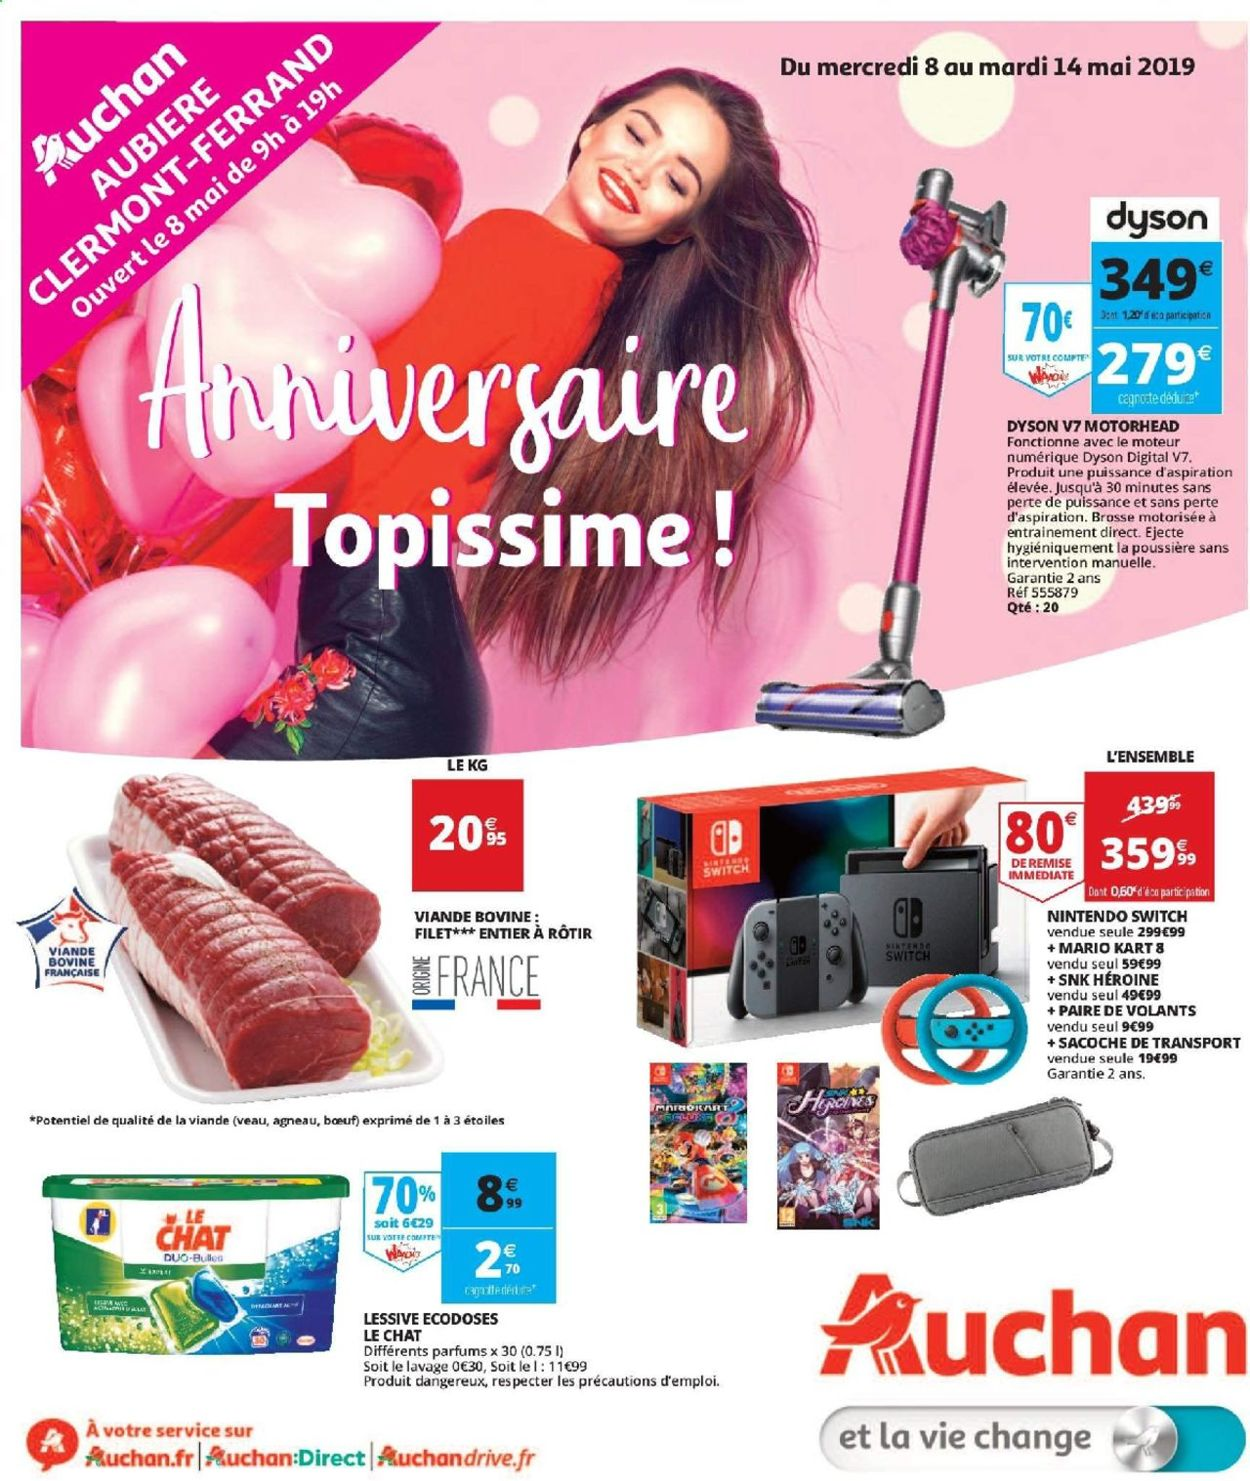 Auchan Catalogue - 08.05-14.05.2019